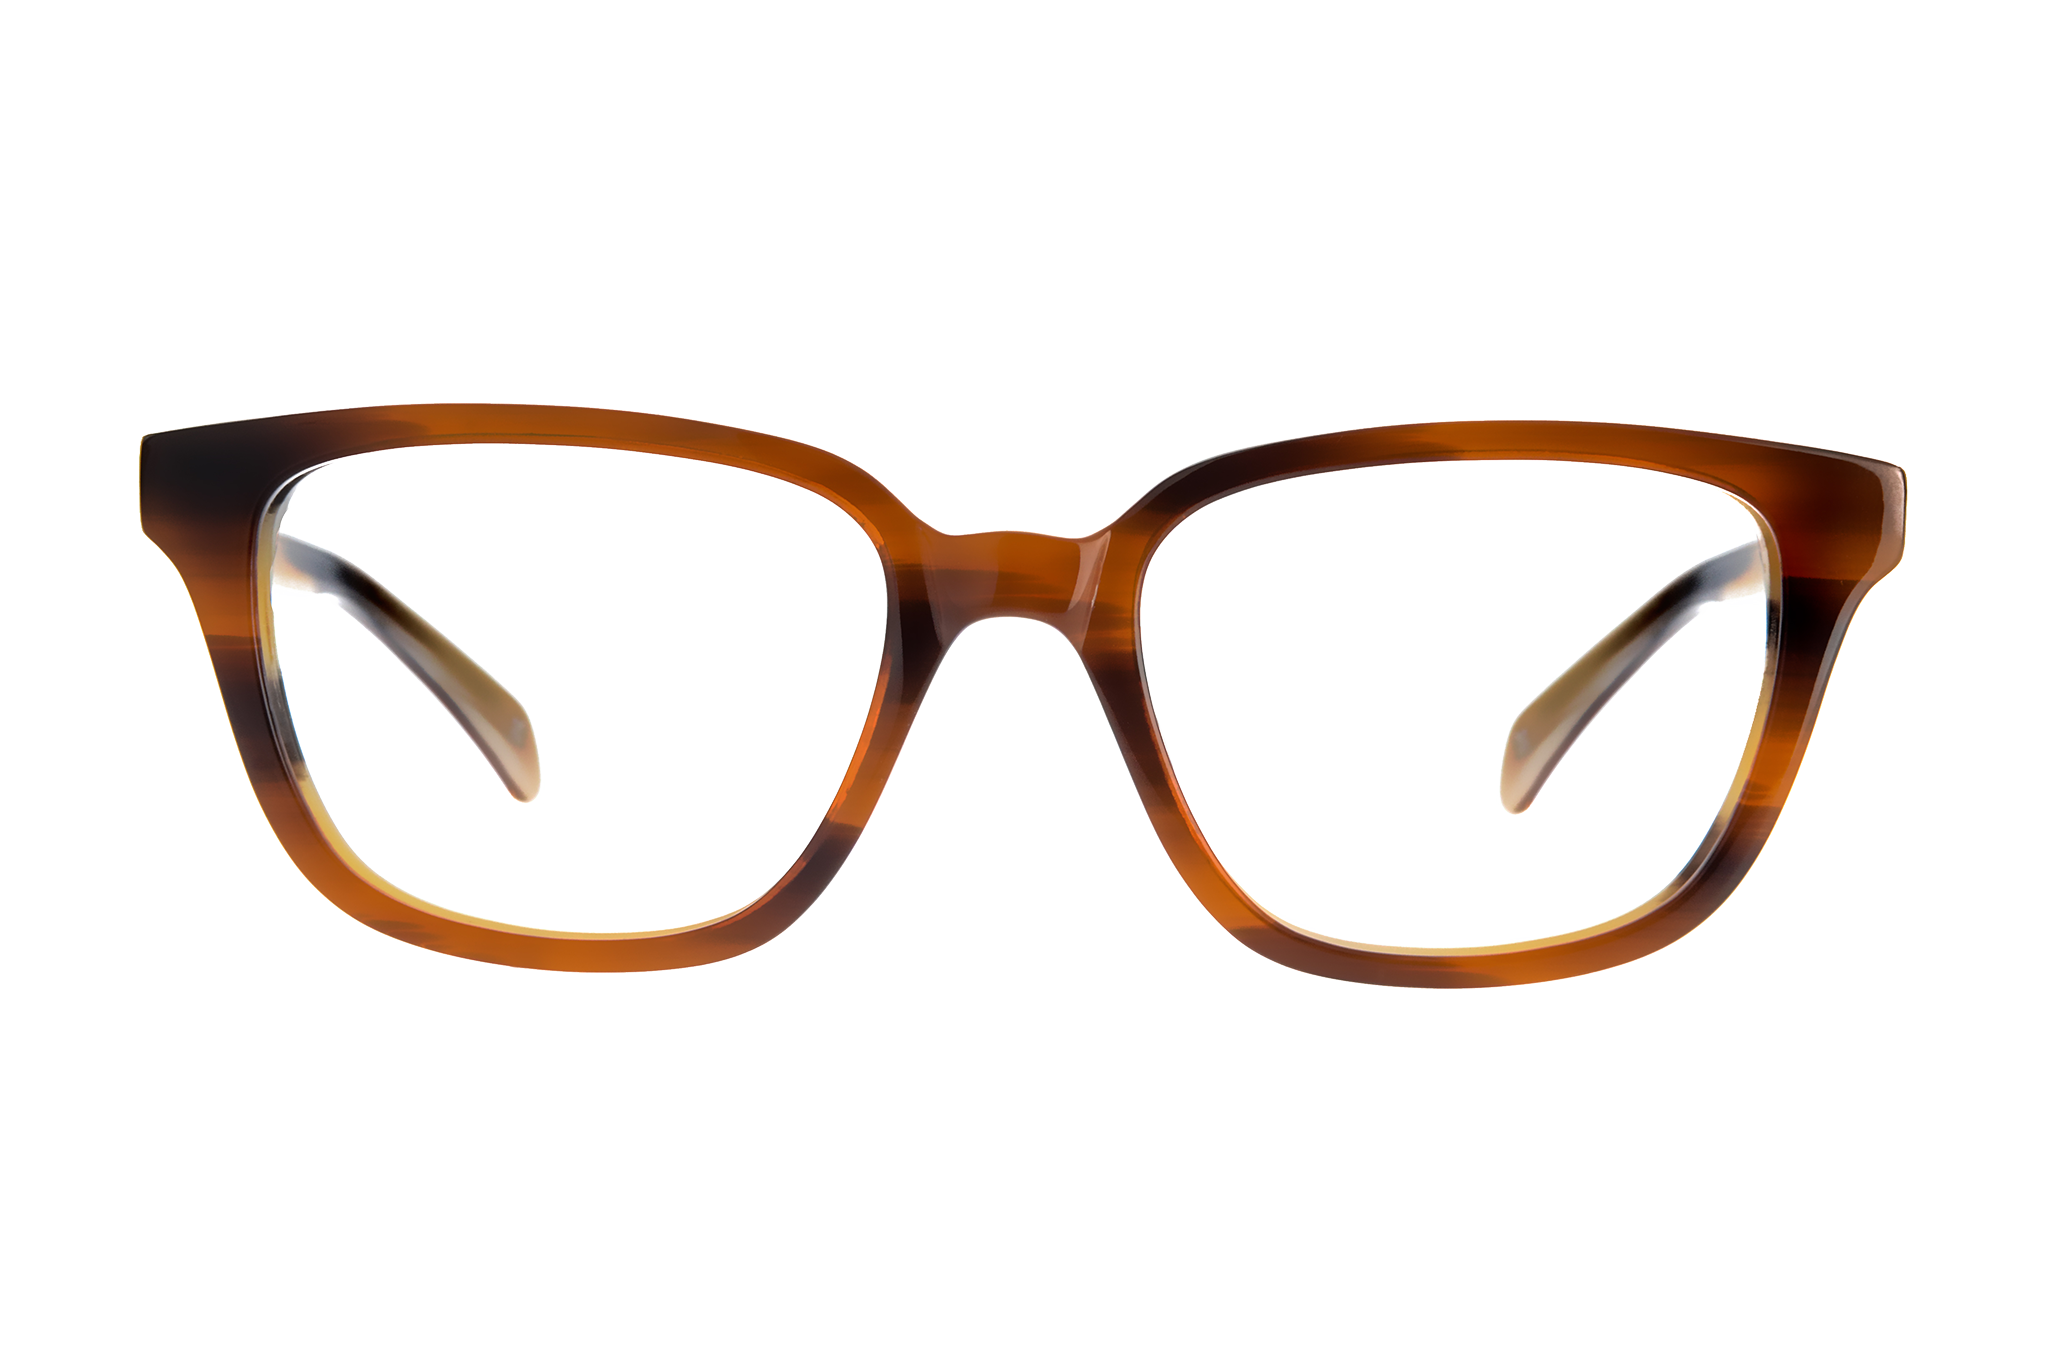 Png image purepng free. Clipart glasses chasma